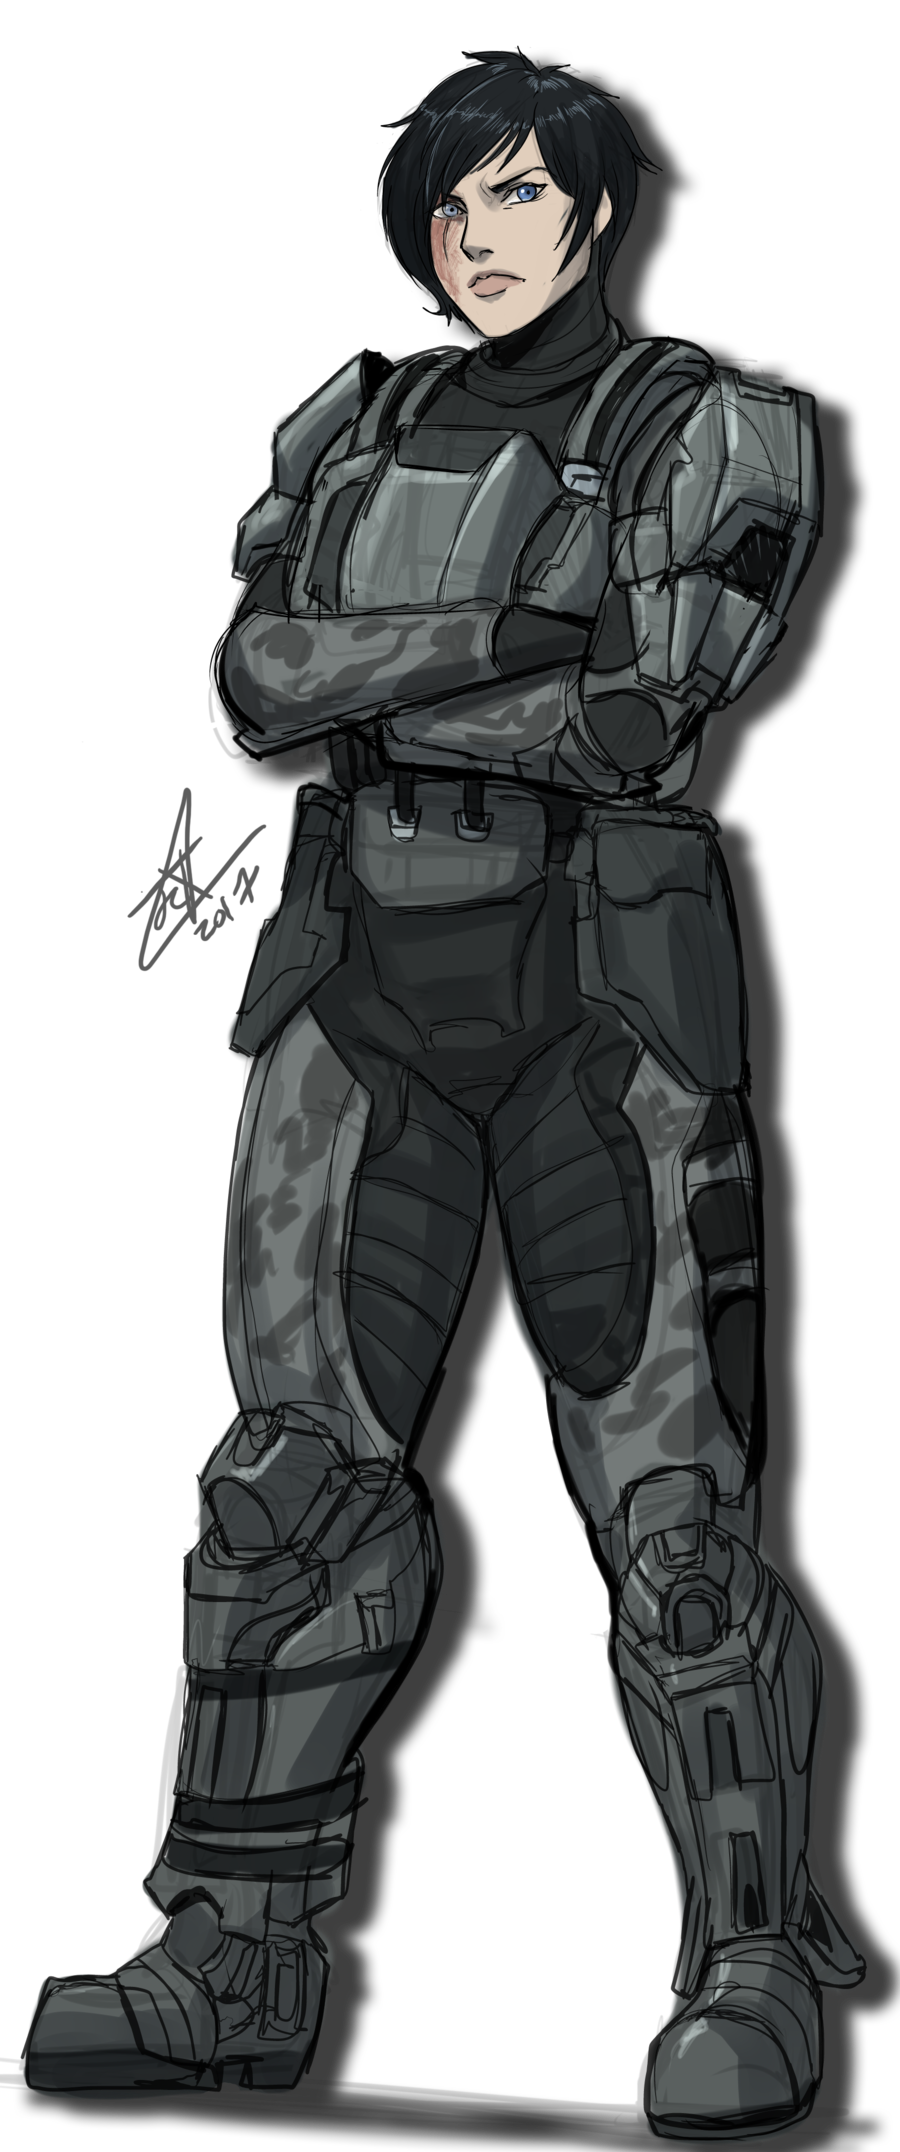 Sketch comm vi by. Odst drawing female image library stock